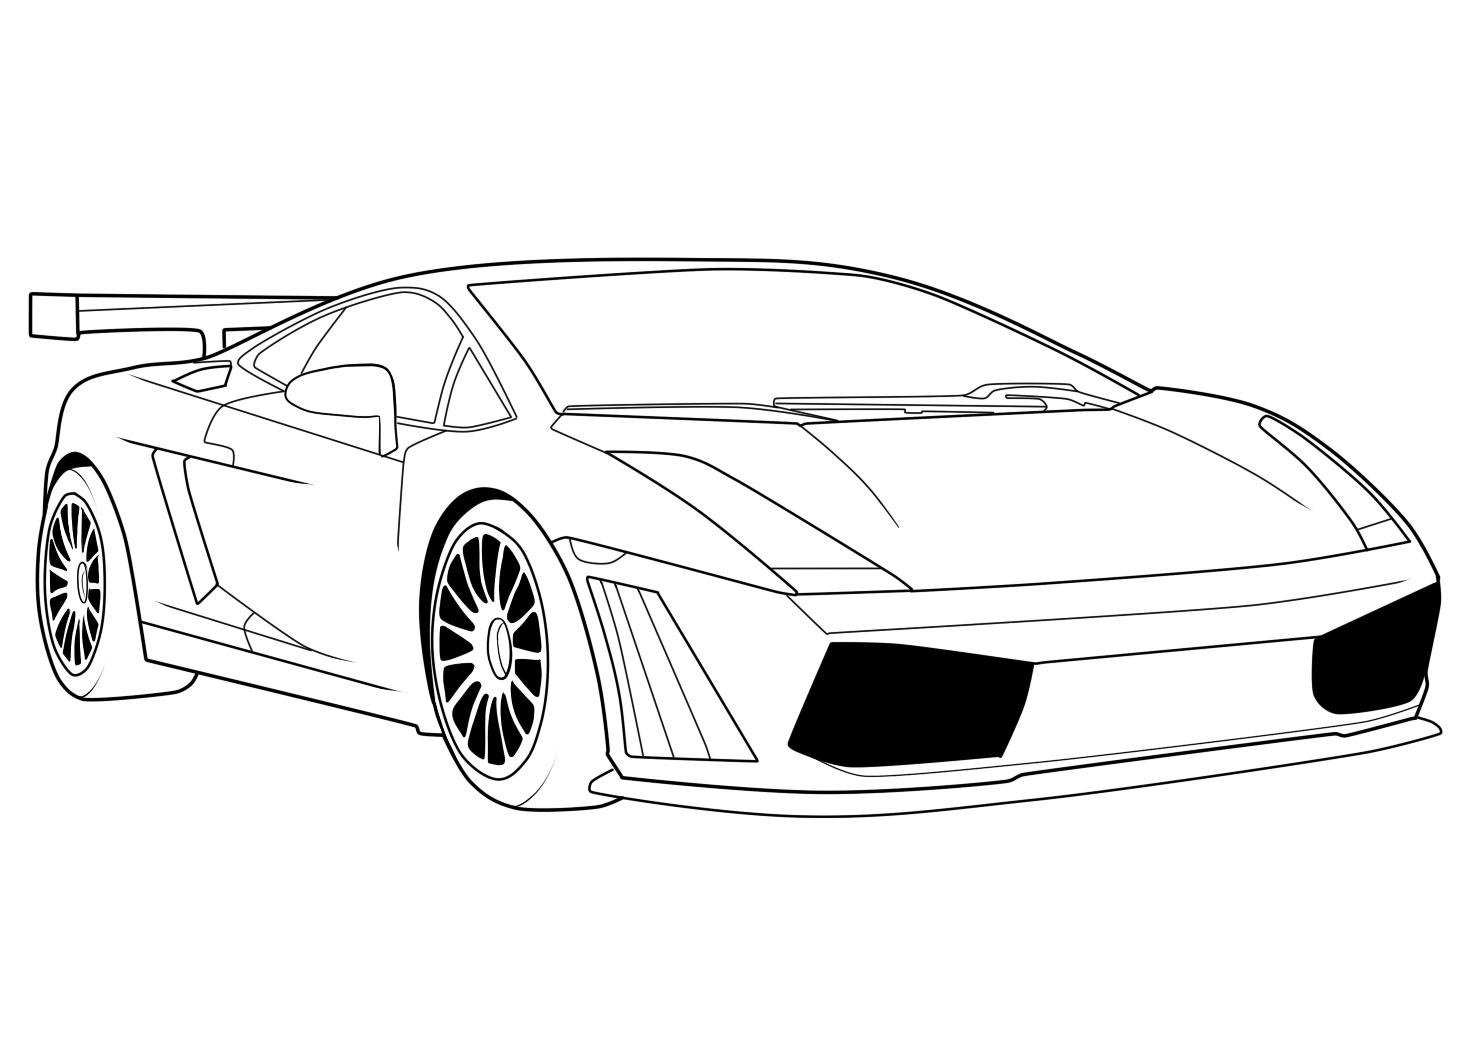 Car Coloring Pages : Free printable lamborghini coloring pages for kids